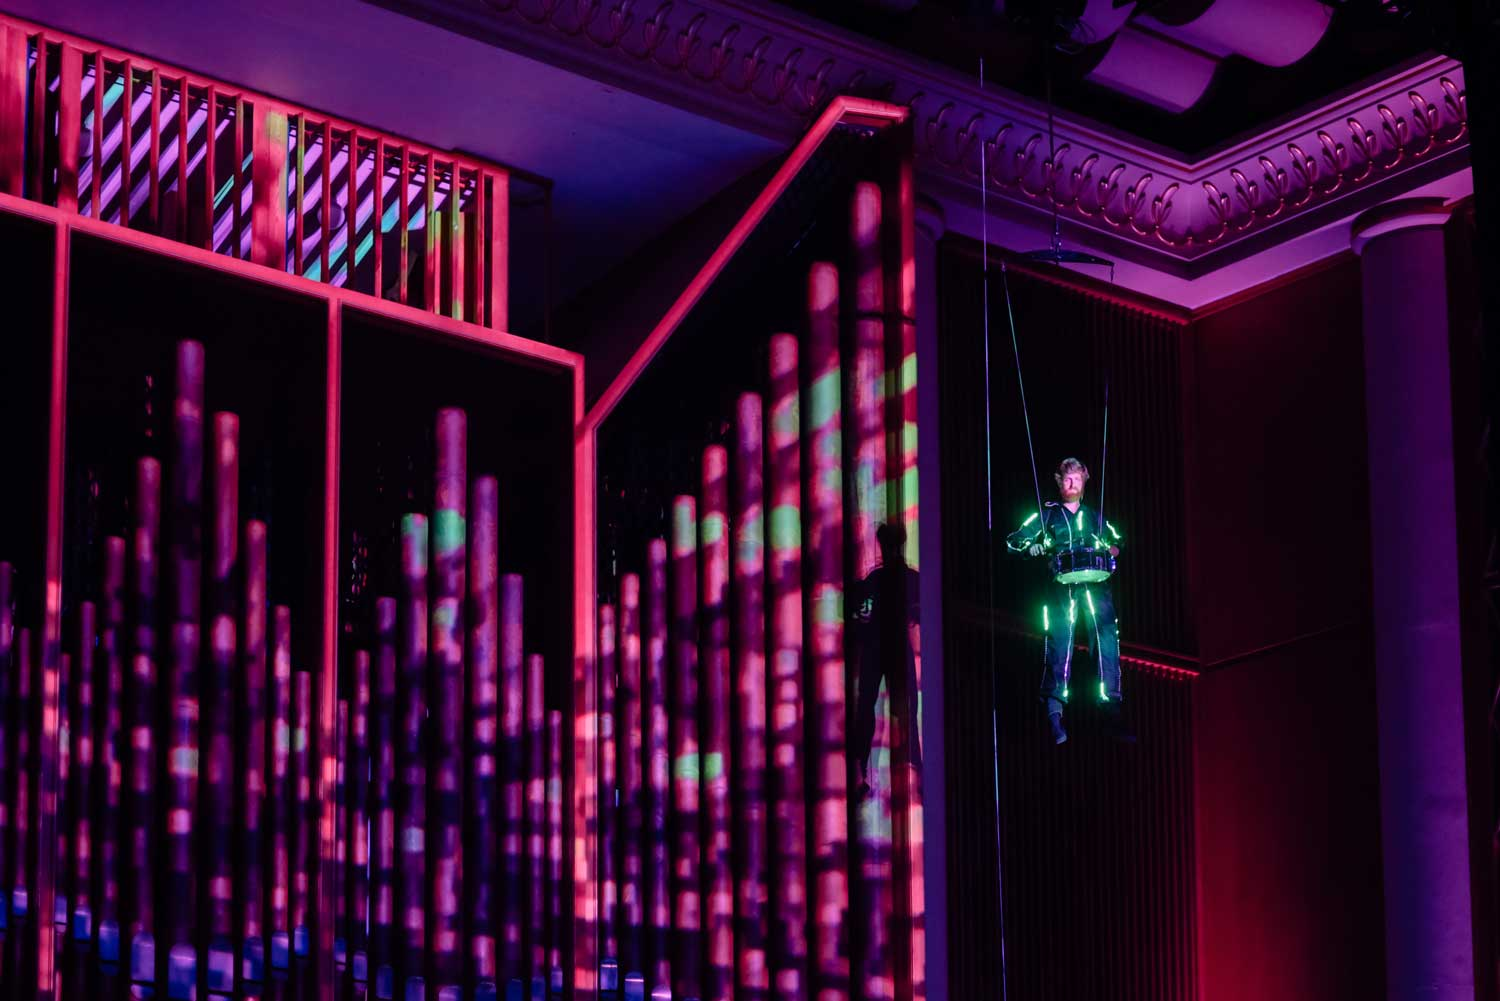 Immersive Show-Zeiss-Performer-DrawLight